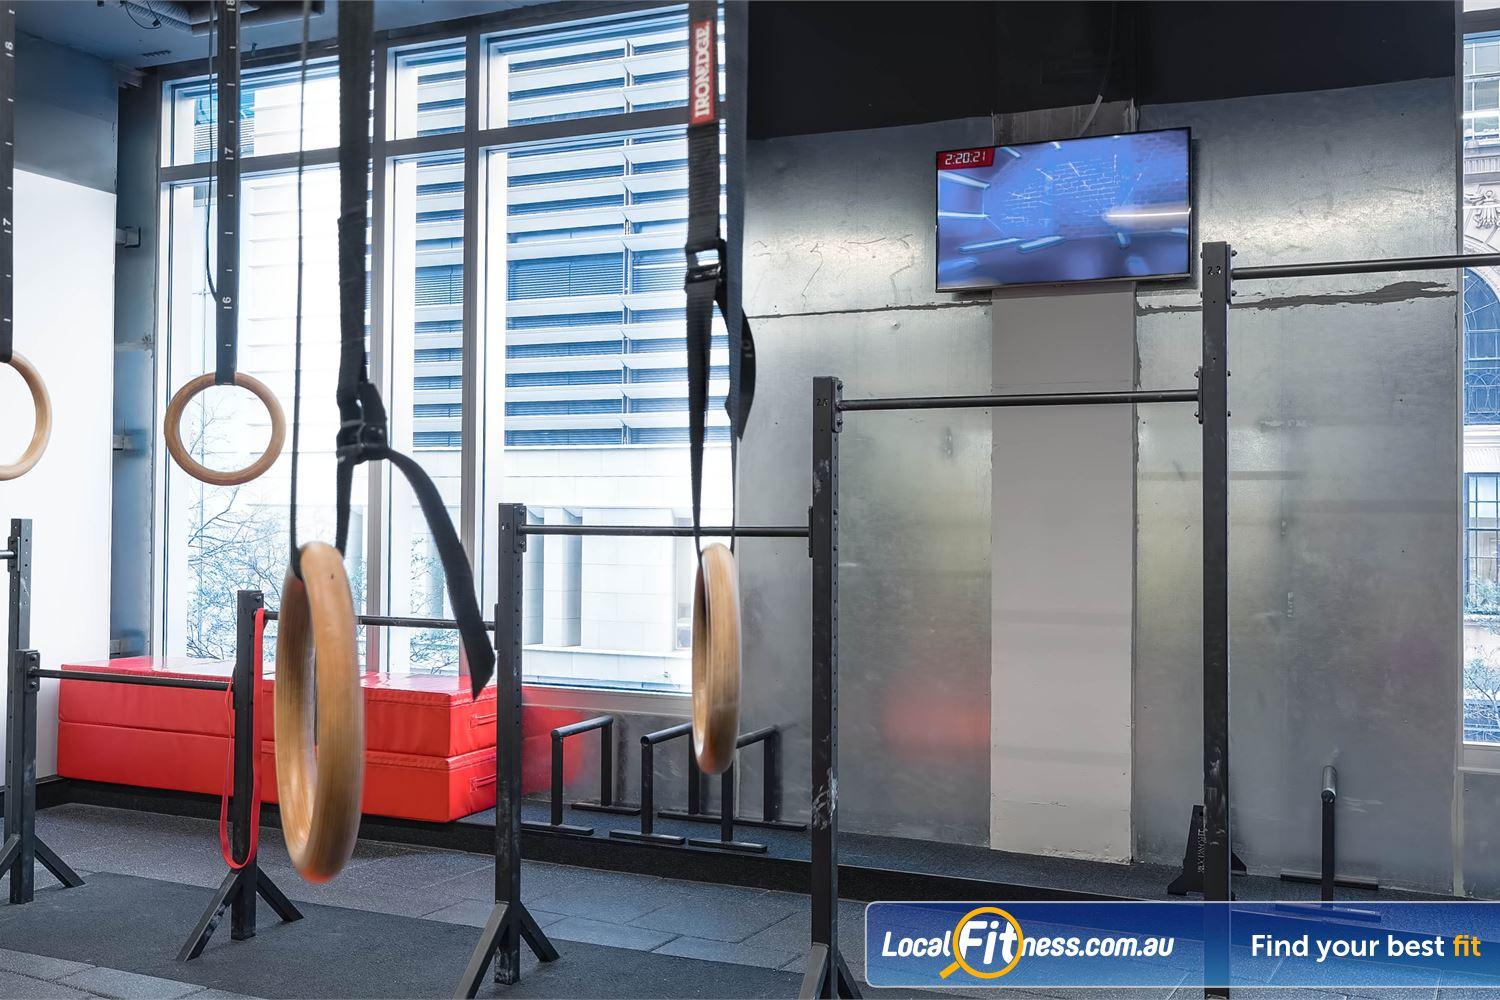 Fitness First Platinum Park St Near World Square Hang, dip, press, planche, muscle-up on our gymnastic matrix strength area.